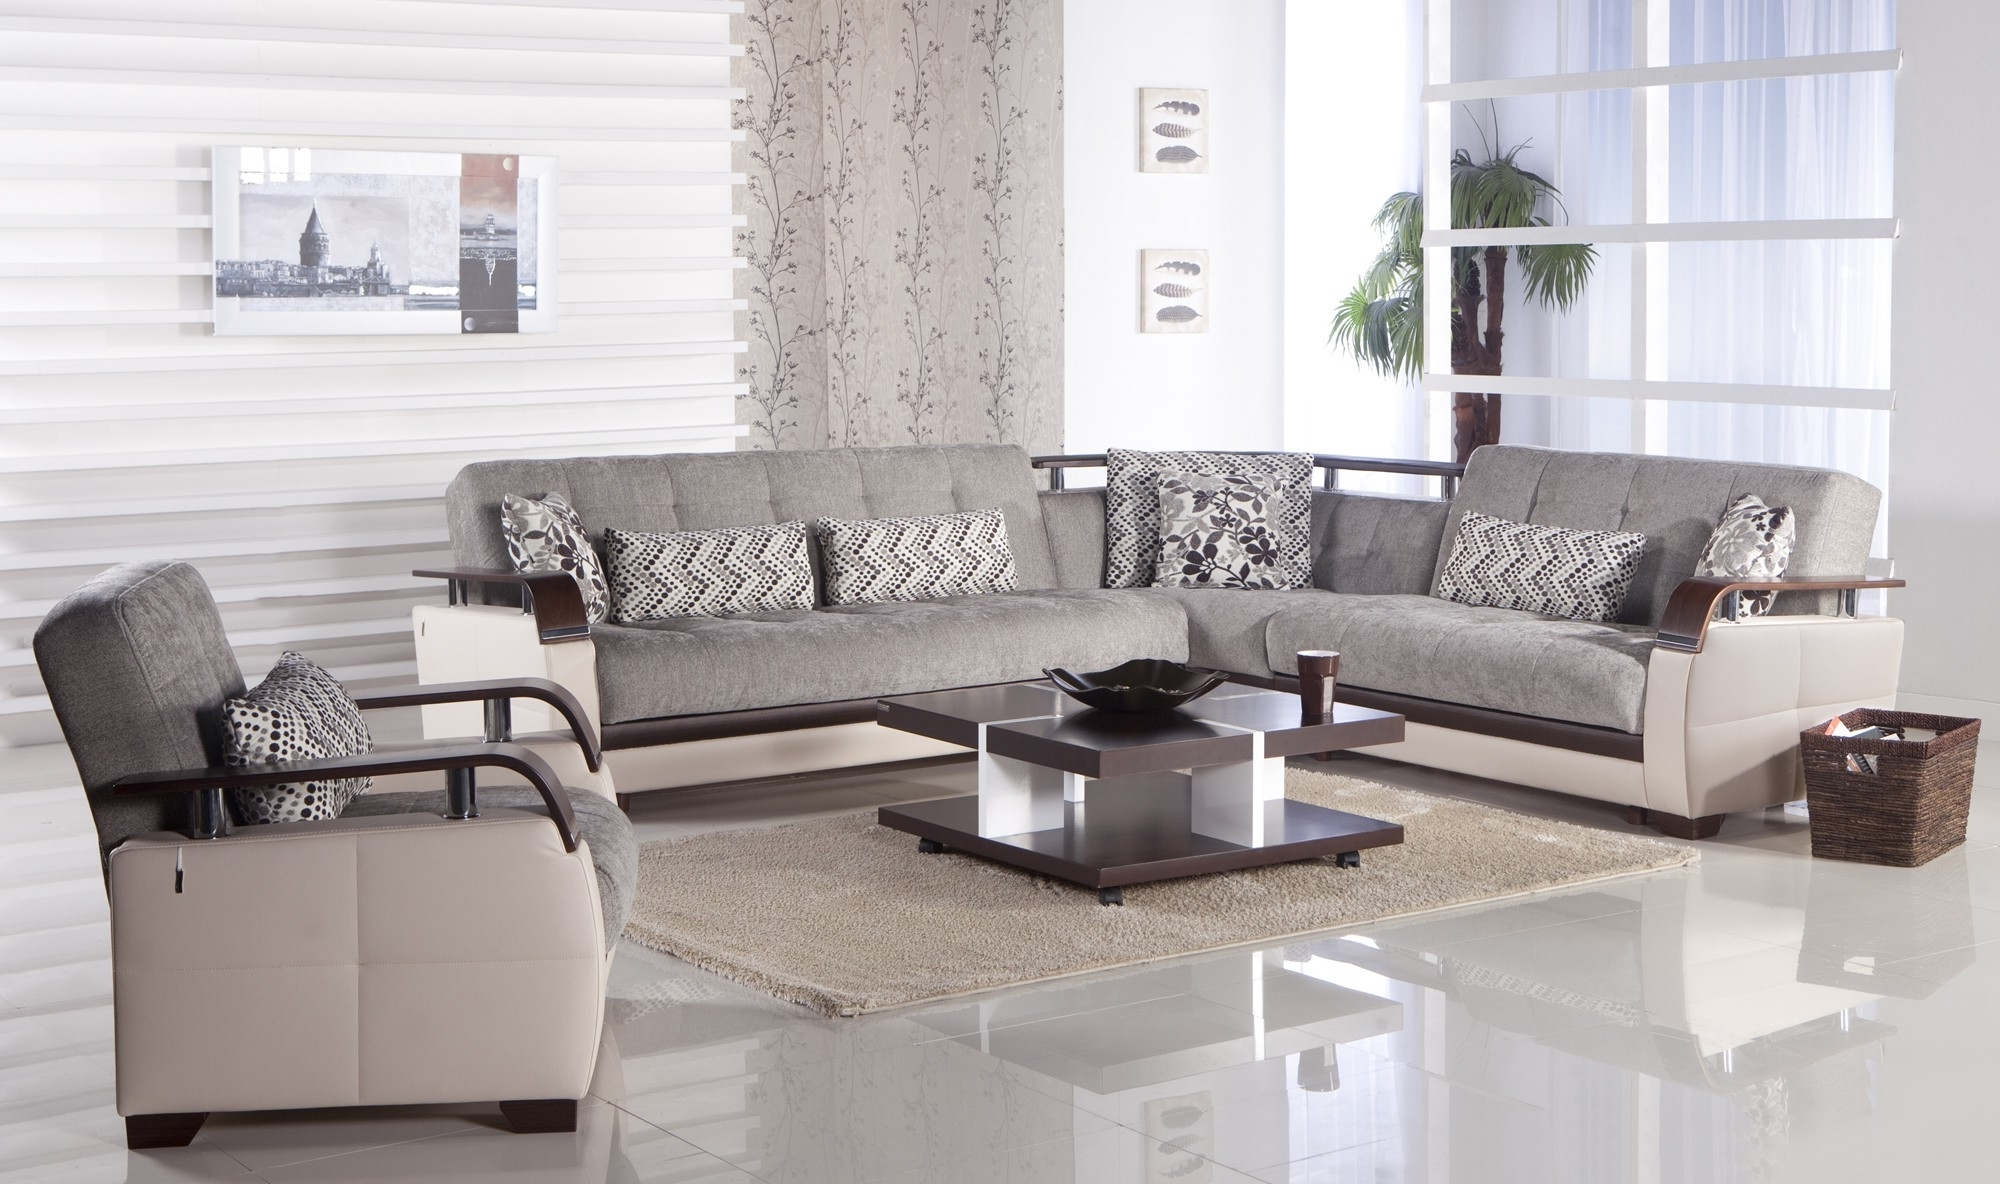 Ontario Canada Sectional Sofas Pertaining To Fashionable Grey Leather Sectional Sofa Canada – Hereo Sofa (View 20 of 20)